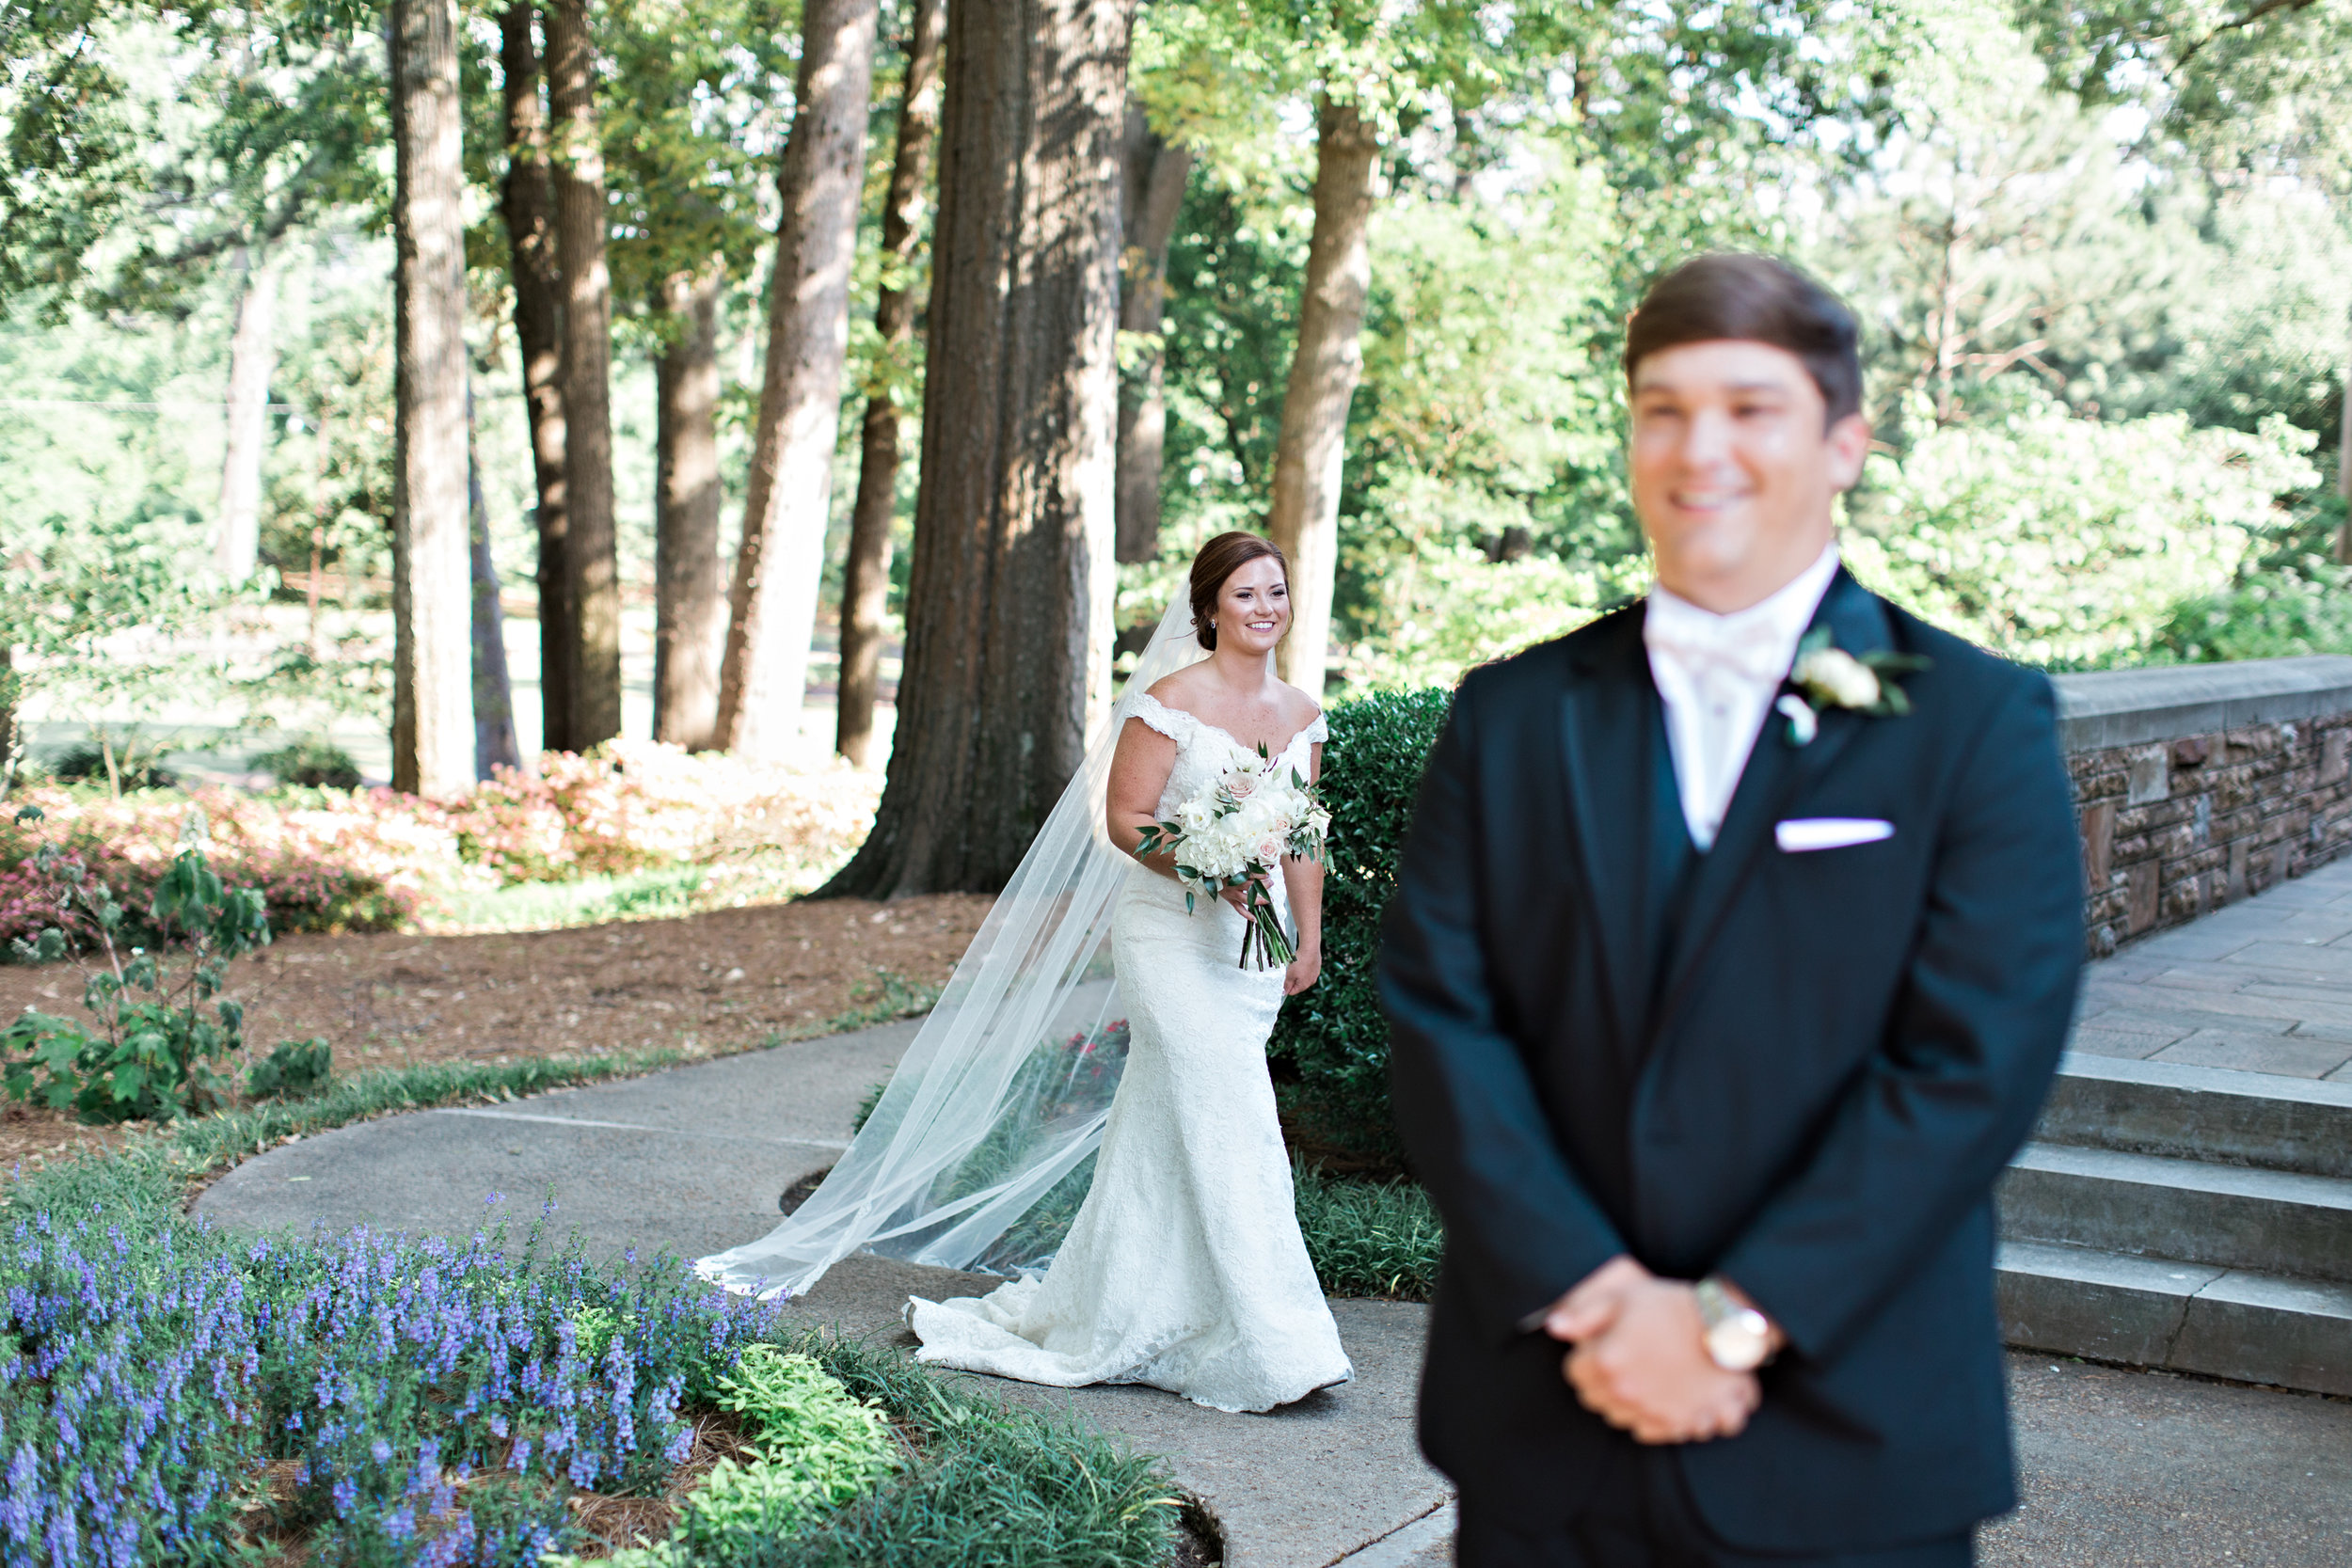 Alabama-Wedding-Photographers-Nick-Drollette-Josie and Heath-121.jpg